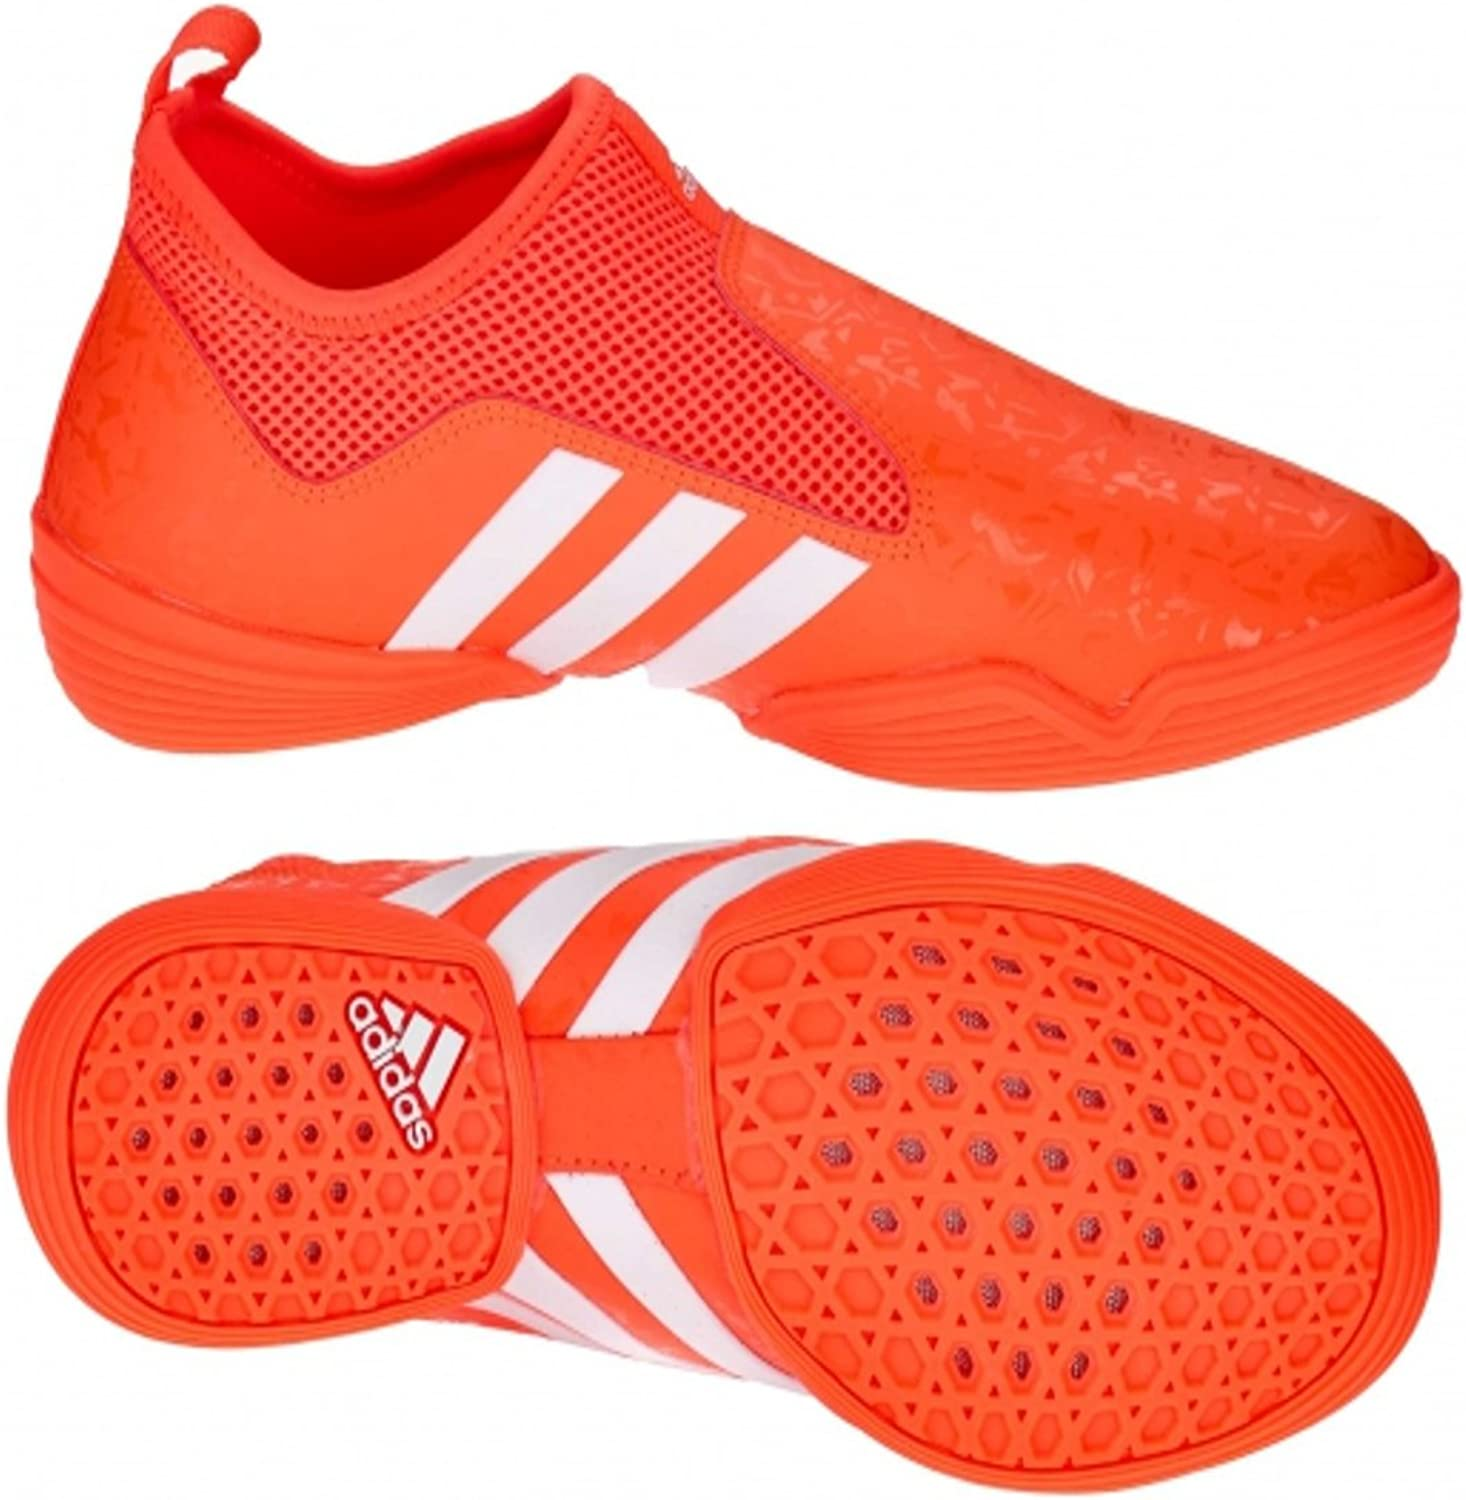 Adidas Men's Martial Arts shoes Red